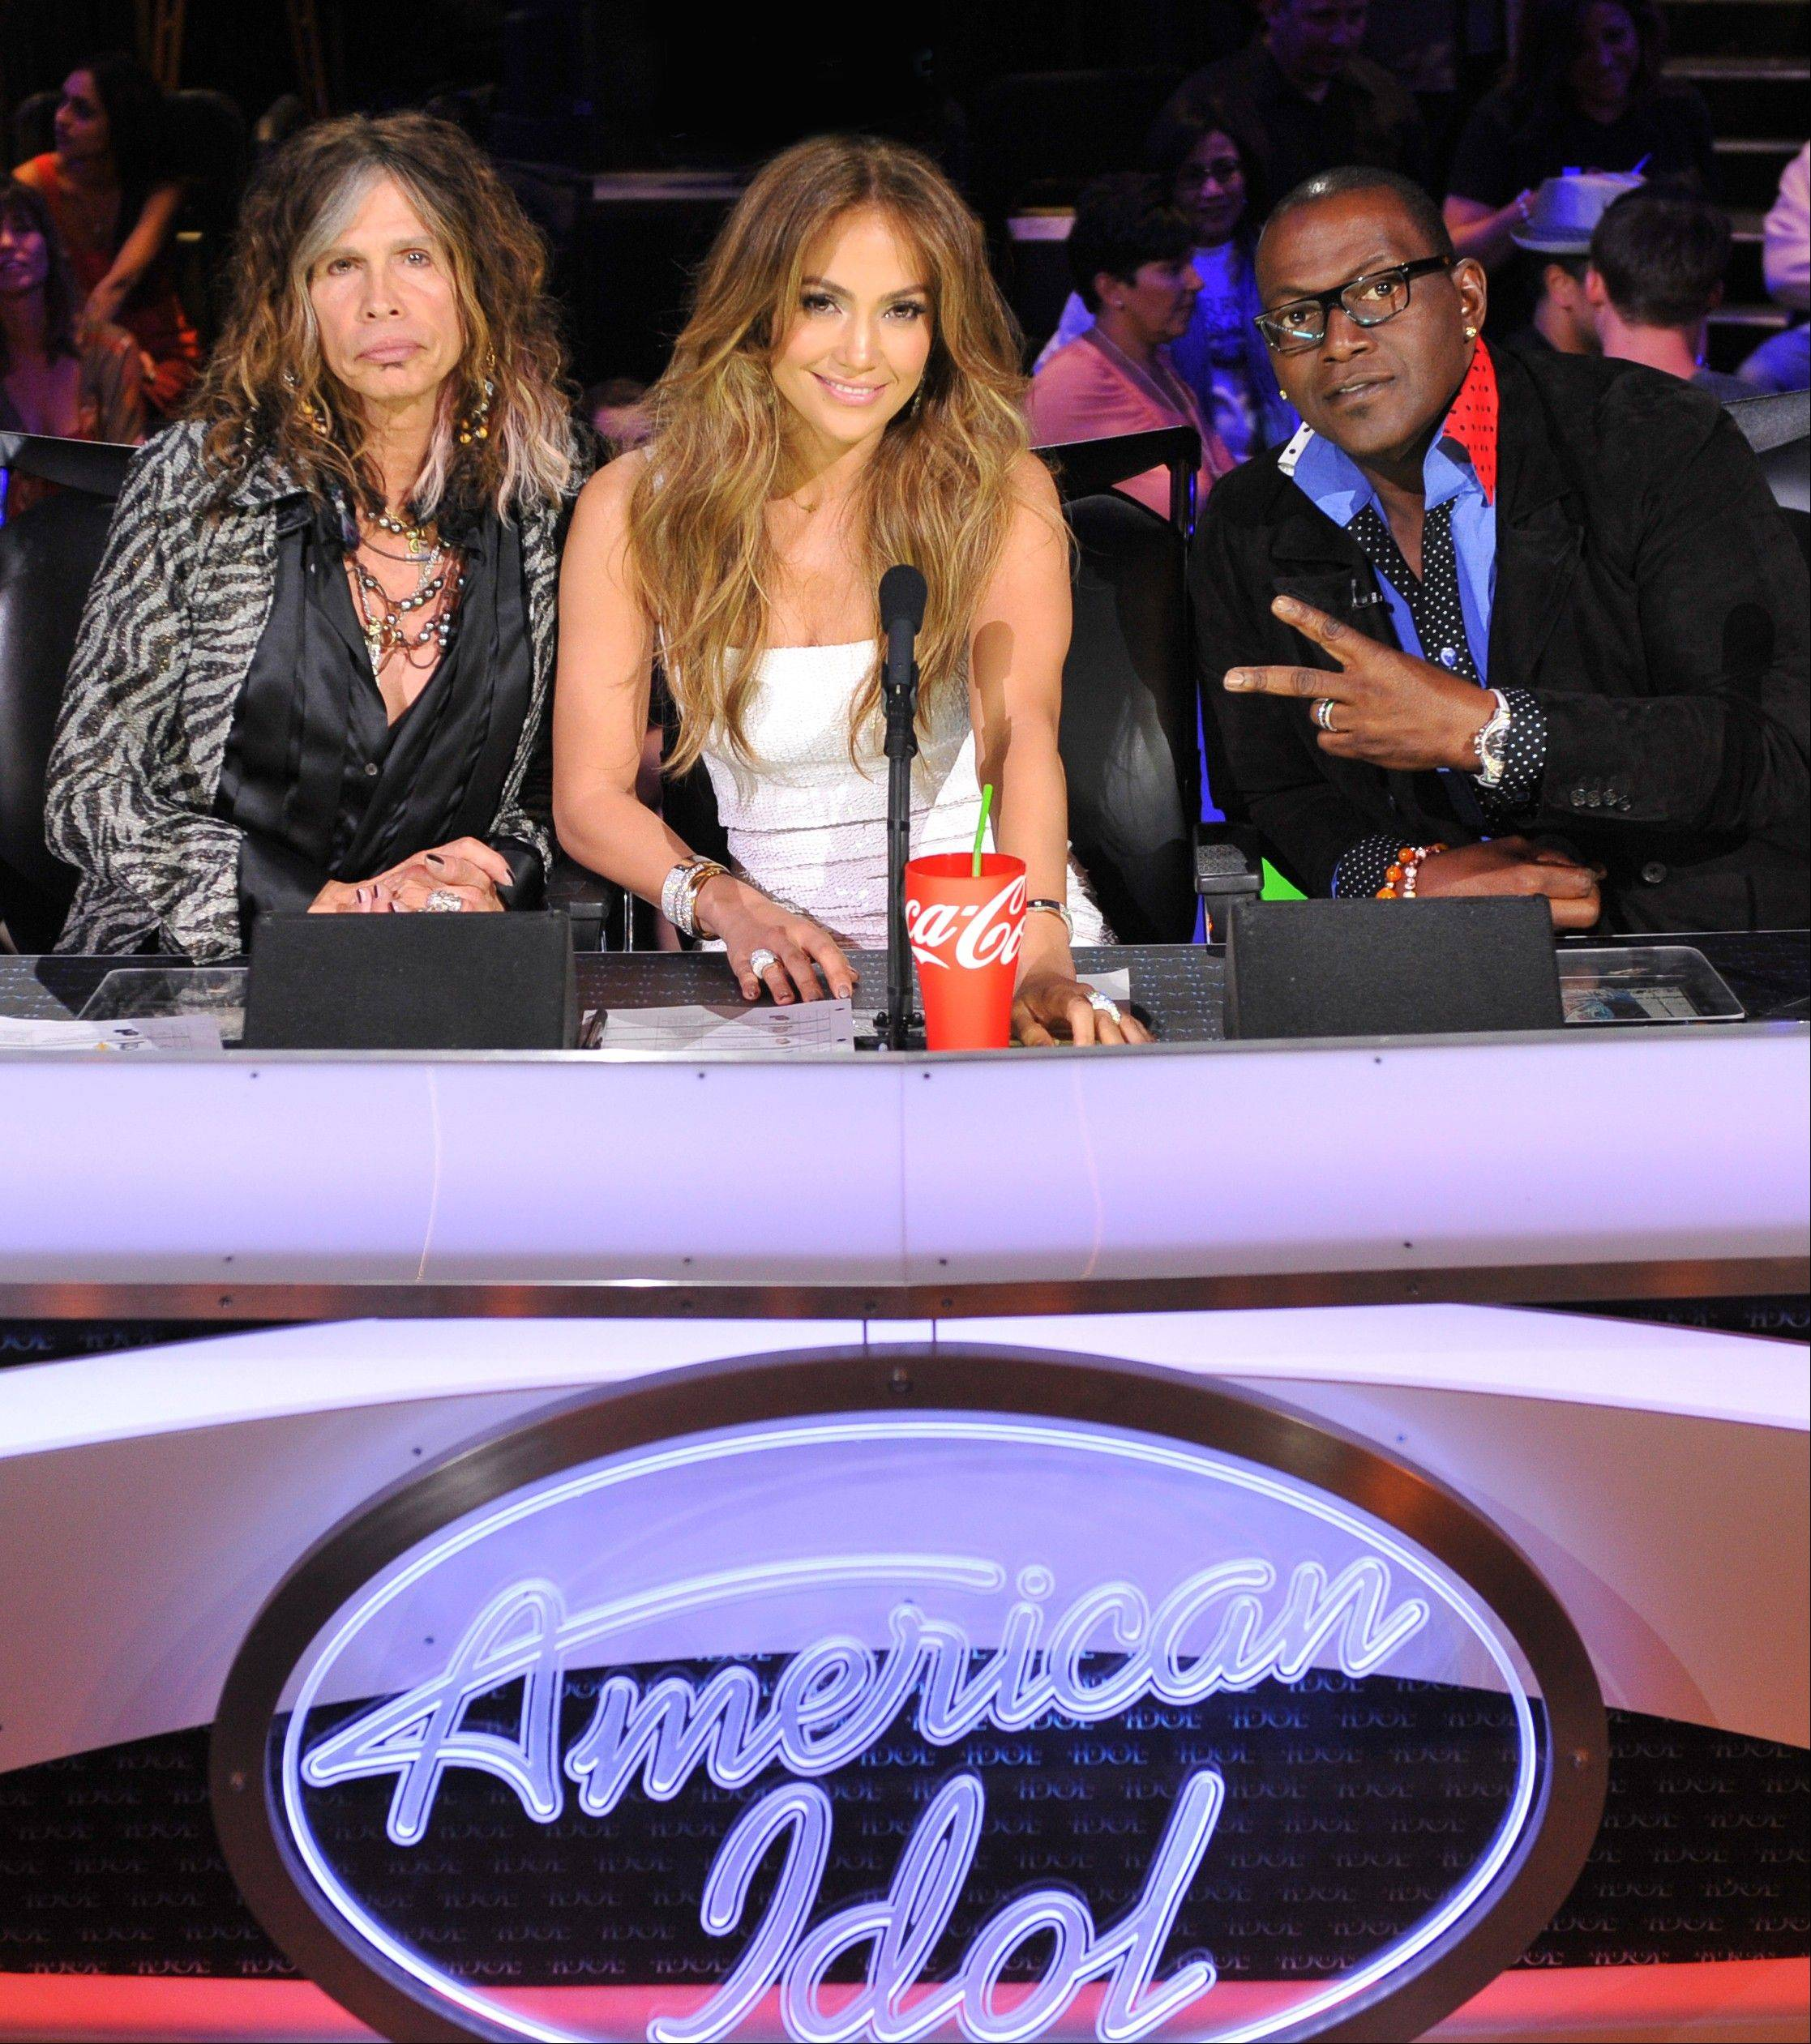 �American Idol� judges, from left, Steven Tyler, Jennifer Lopez and Randy Jackson are shown on the set of the singing competition series, �American Idol,� in Los Angeles. Tyler announced Thursday that he will not be returning as a judge on the singing competition series �American Idol.� Tyler served as a judge with singer/actress Jennifer Lopez and Randy Jackson on the 10th and 11th season of the series.